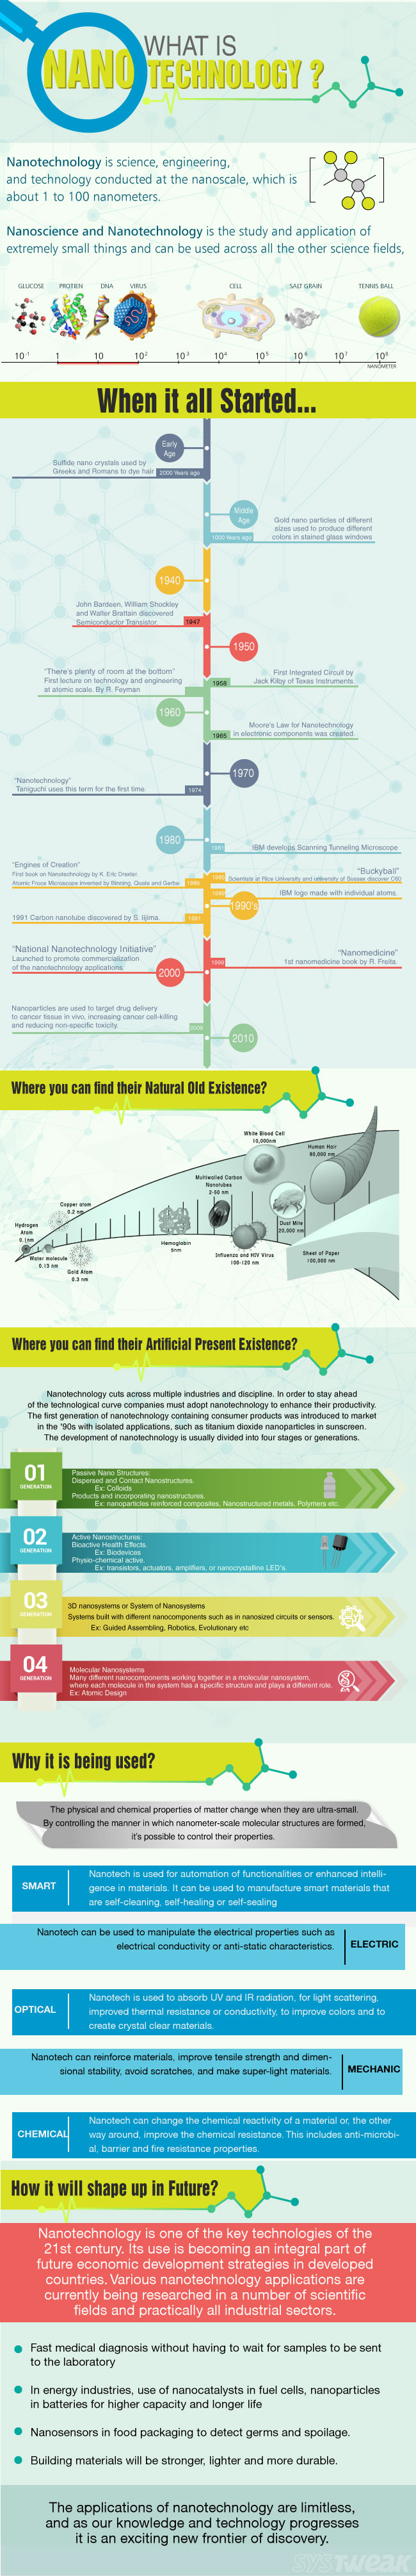 Infographic on Nanotechnology